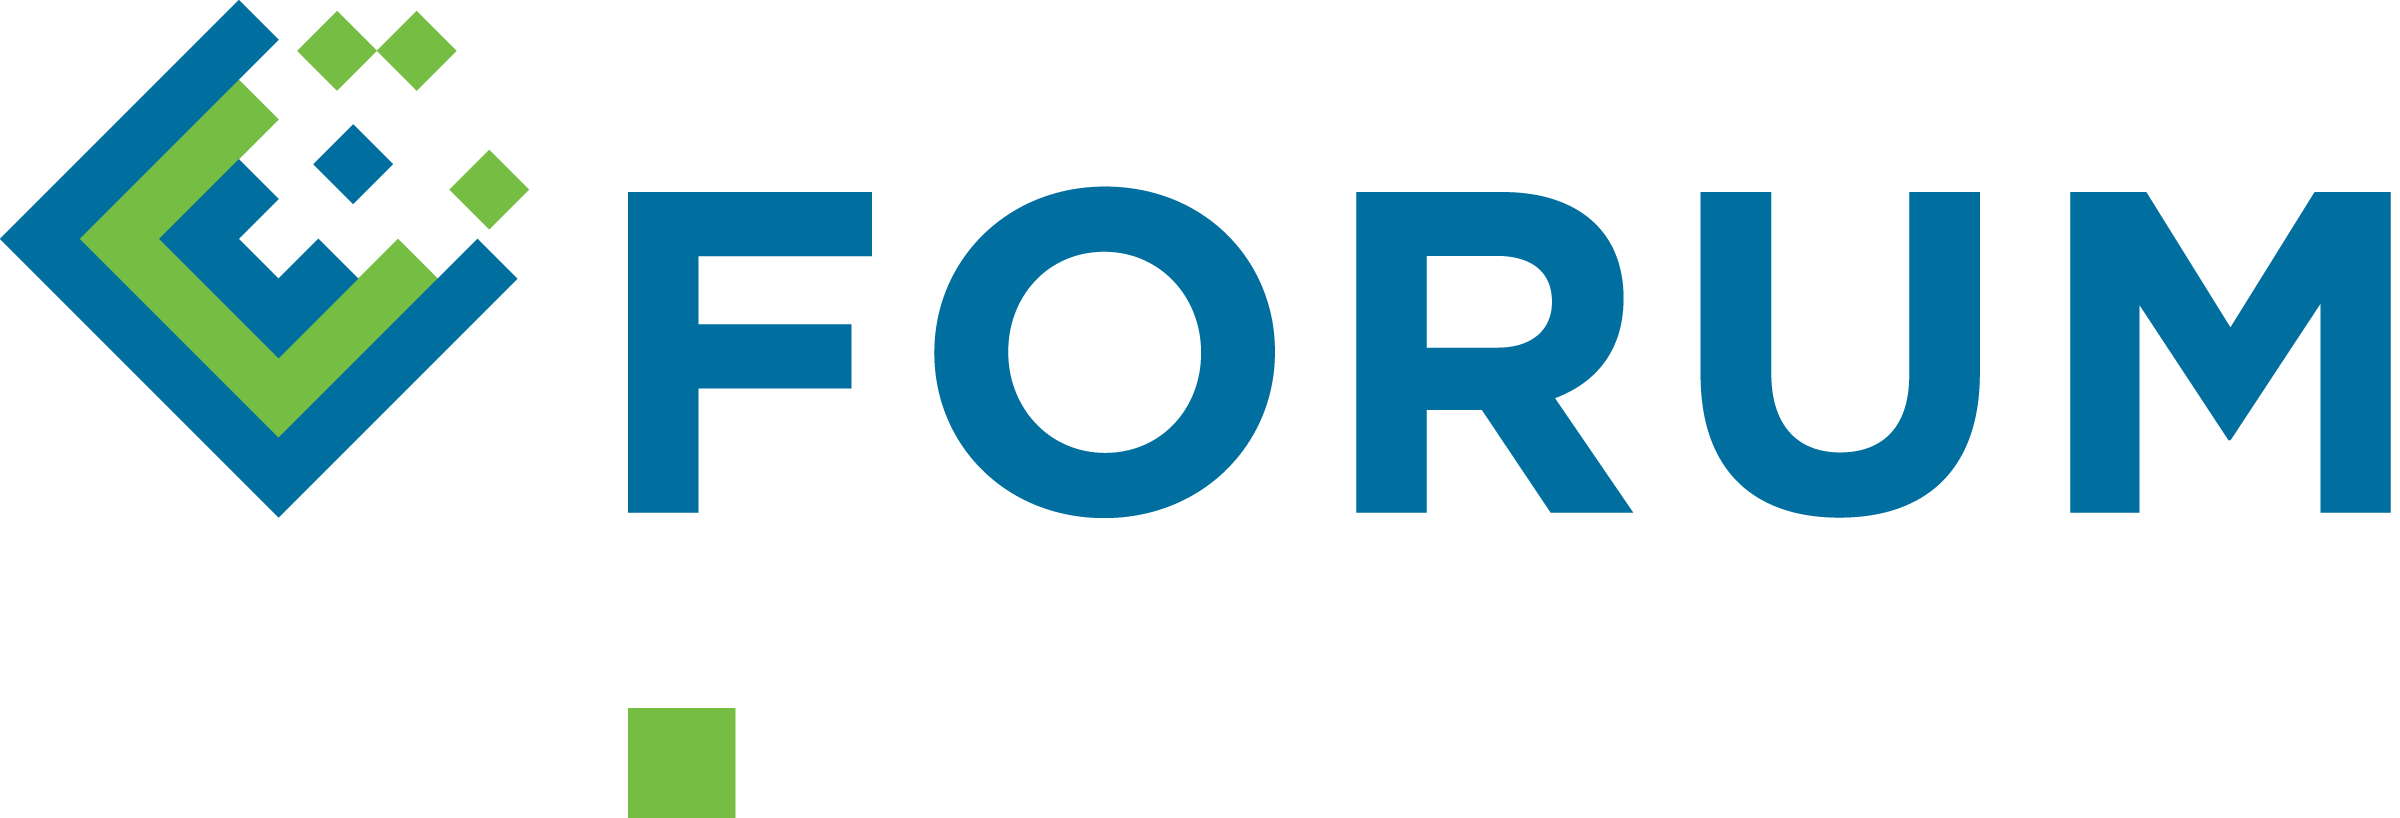 United Philanthropy Fourm